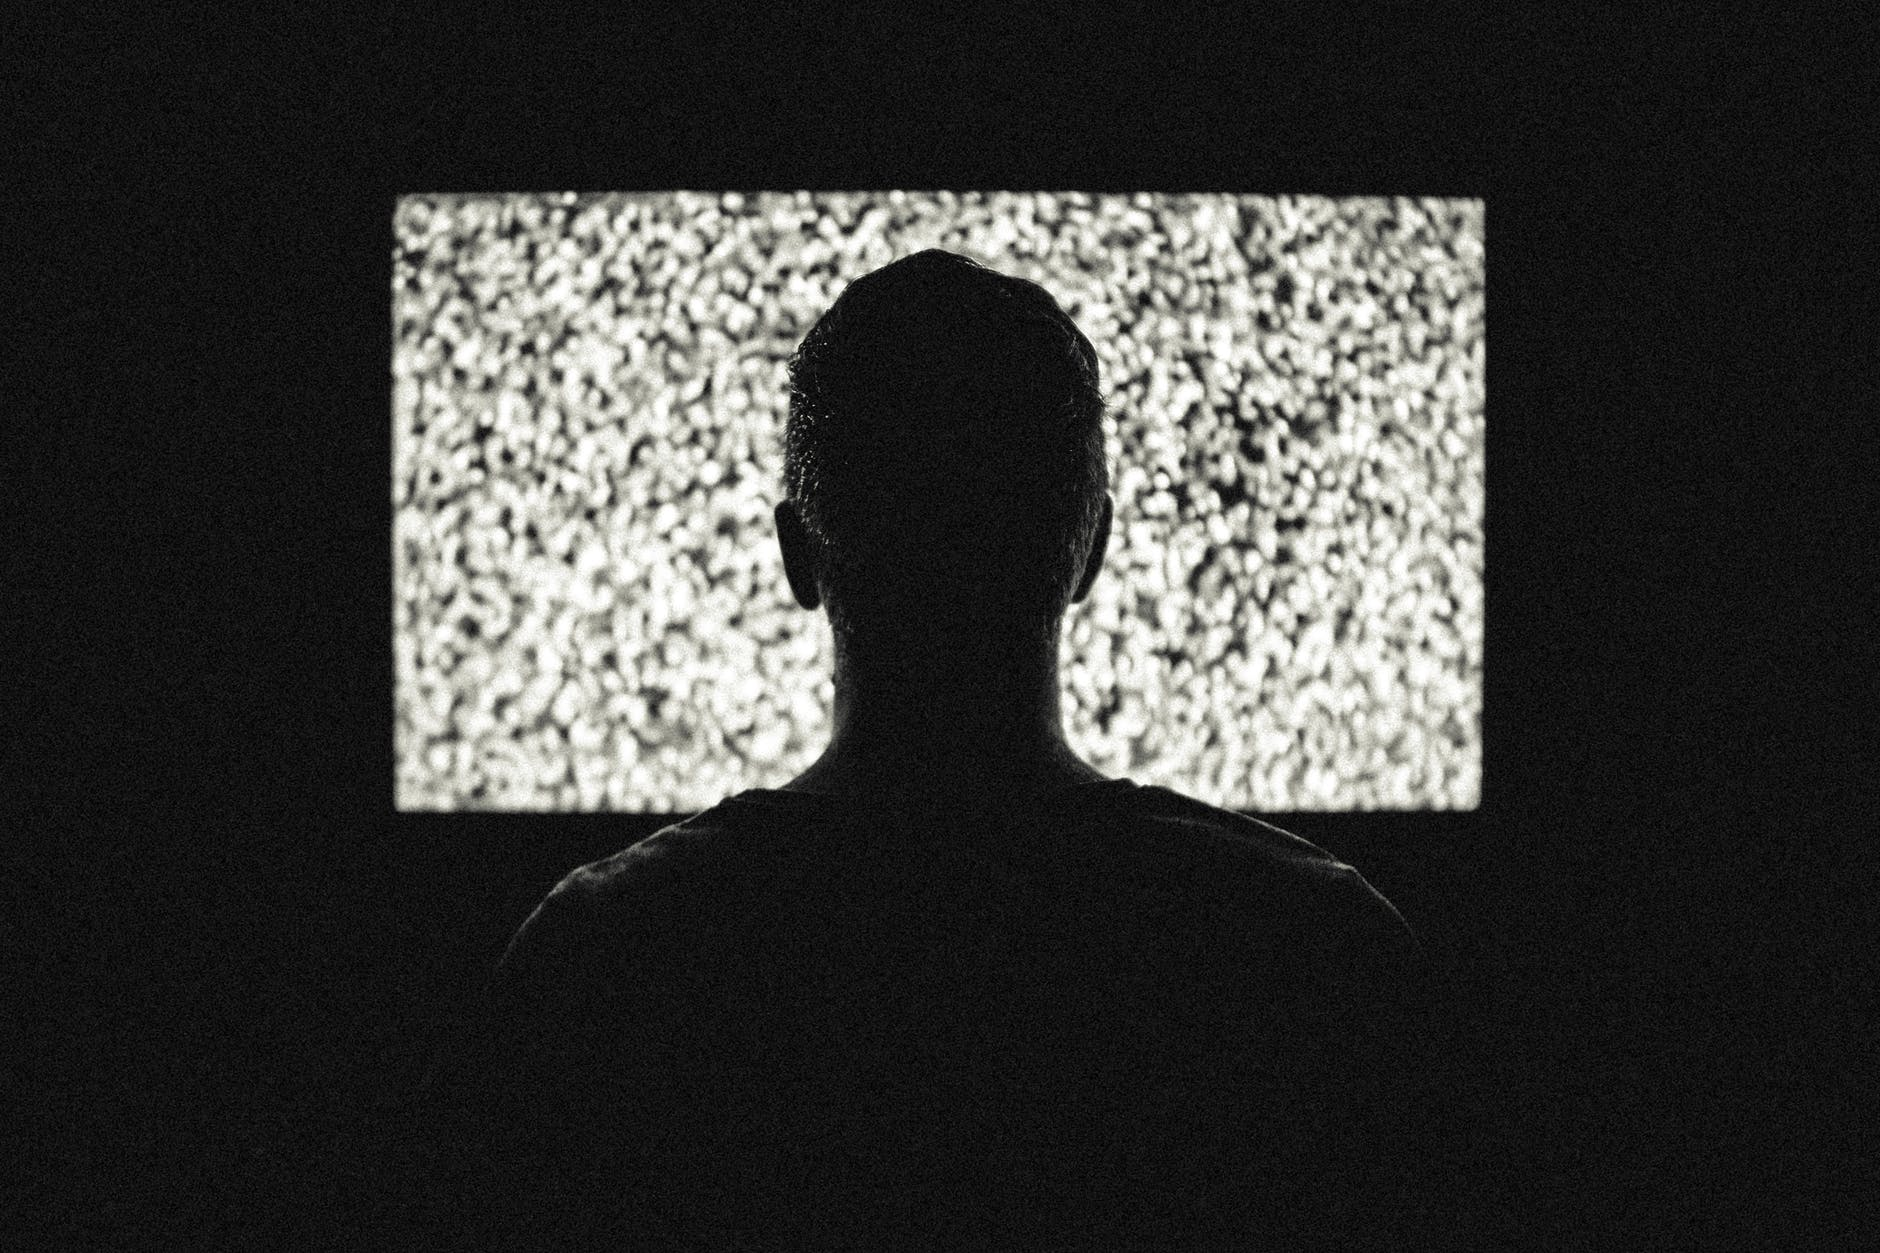 Person watching TV at night